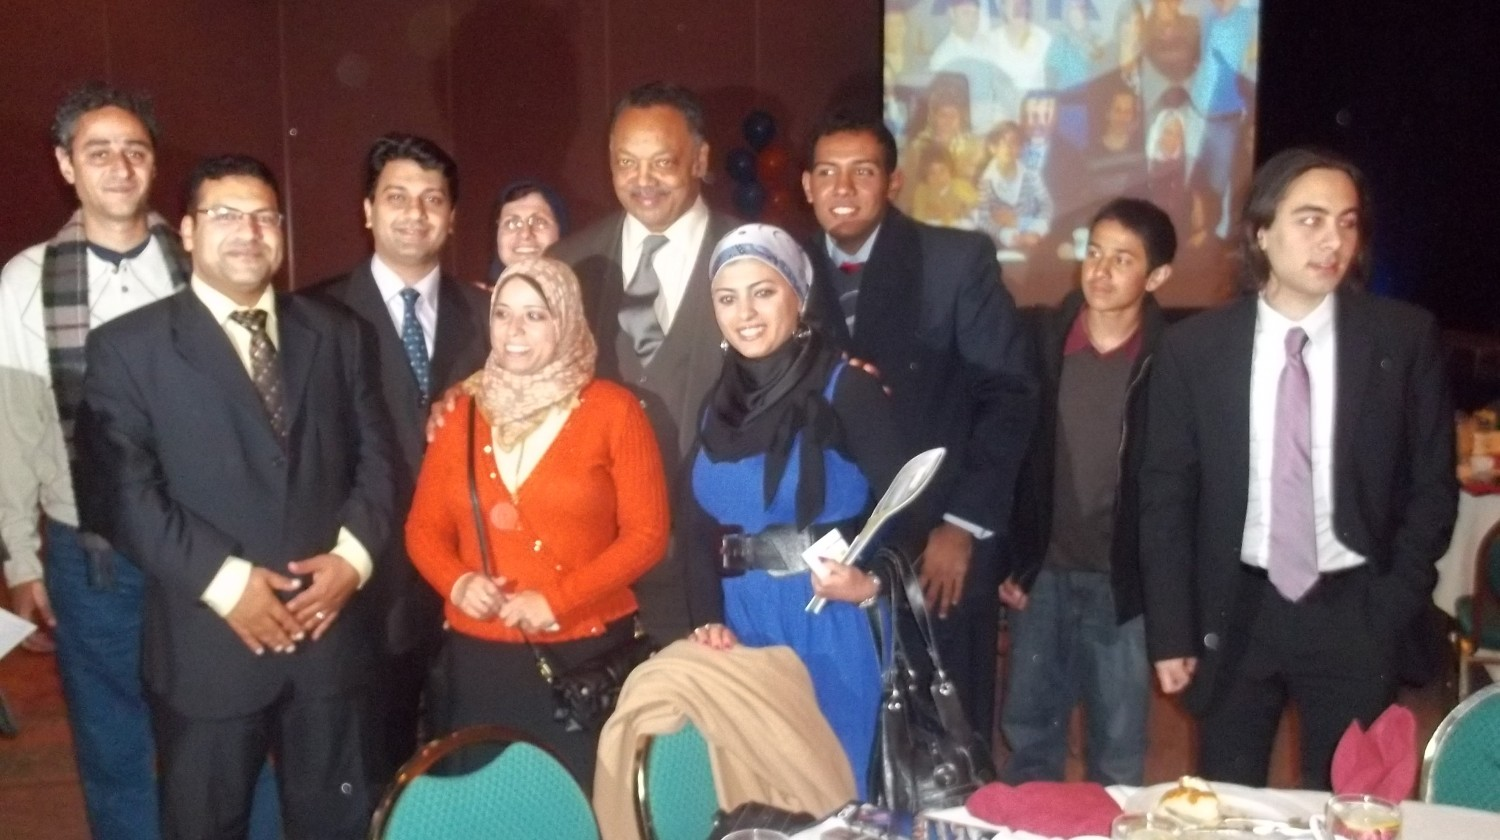 Delegates from Egypt at a CAIR dinner